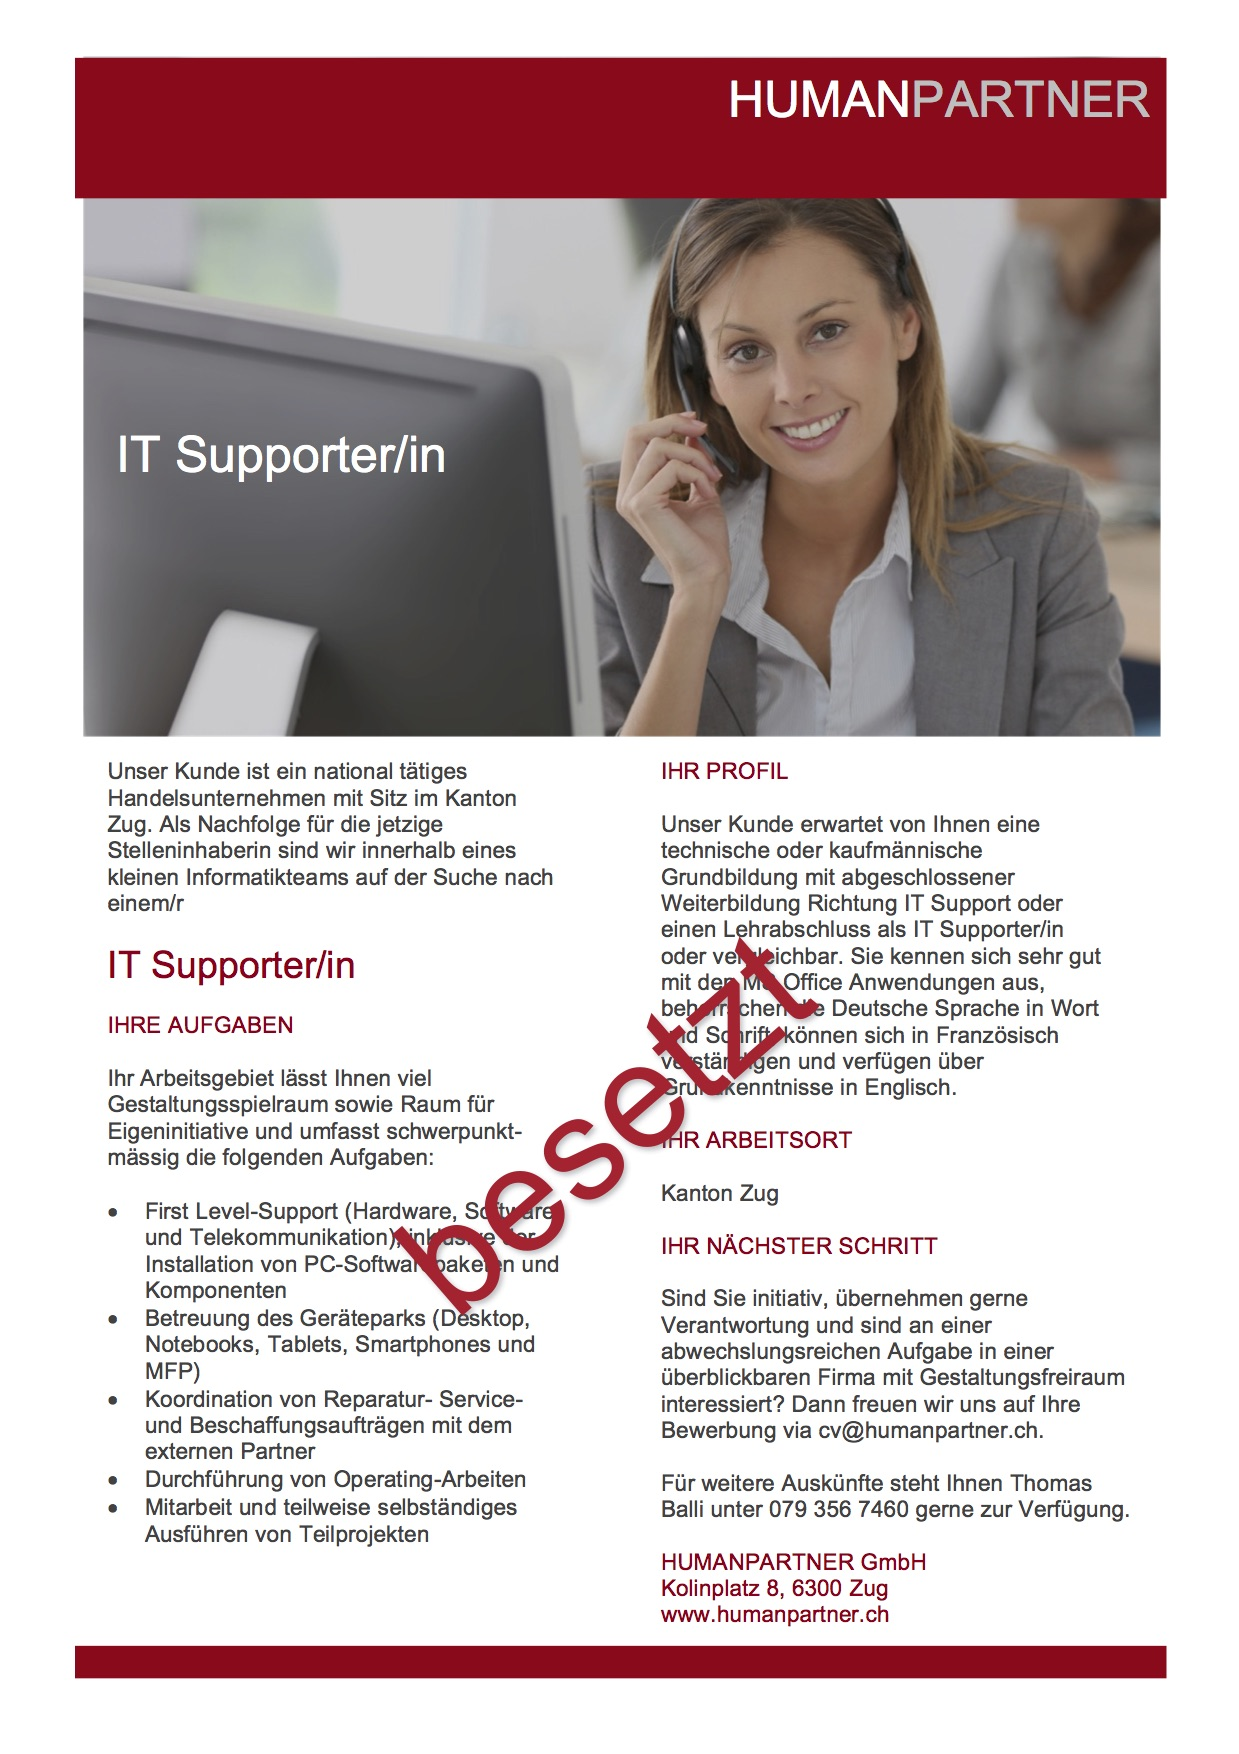 IT SupporterIn 2017